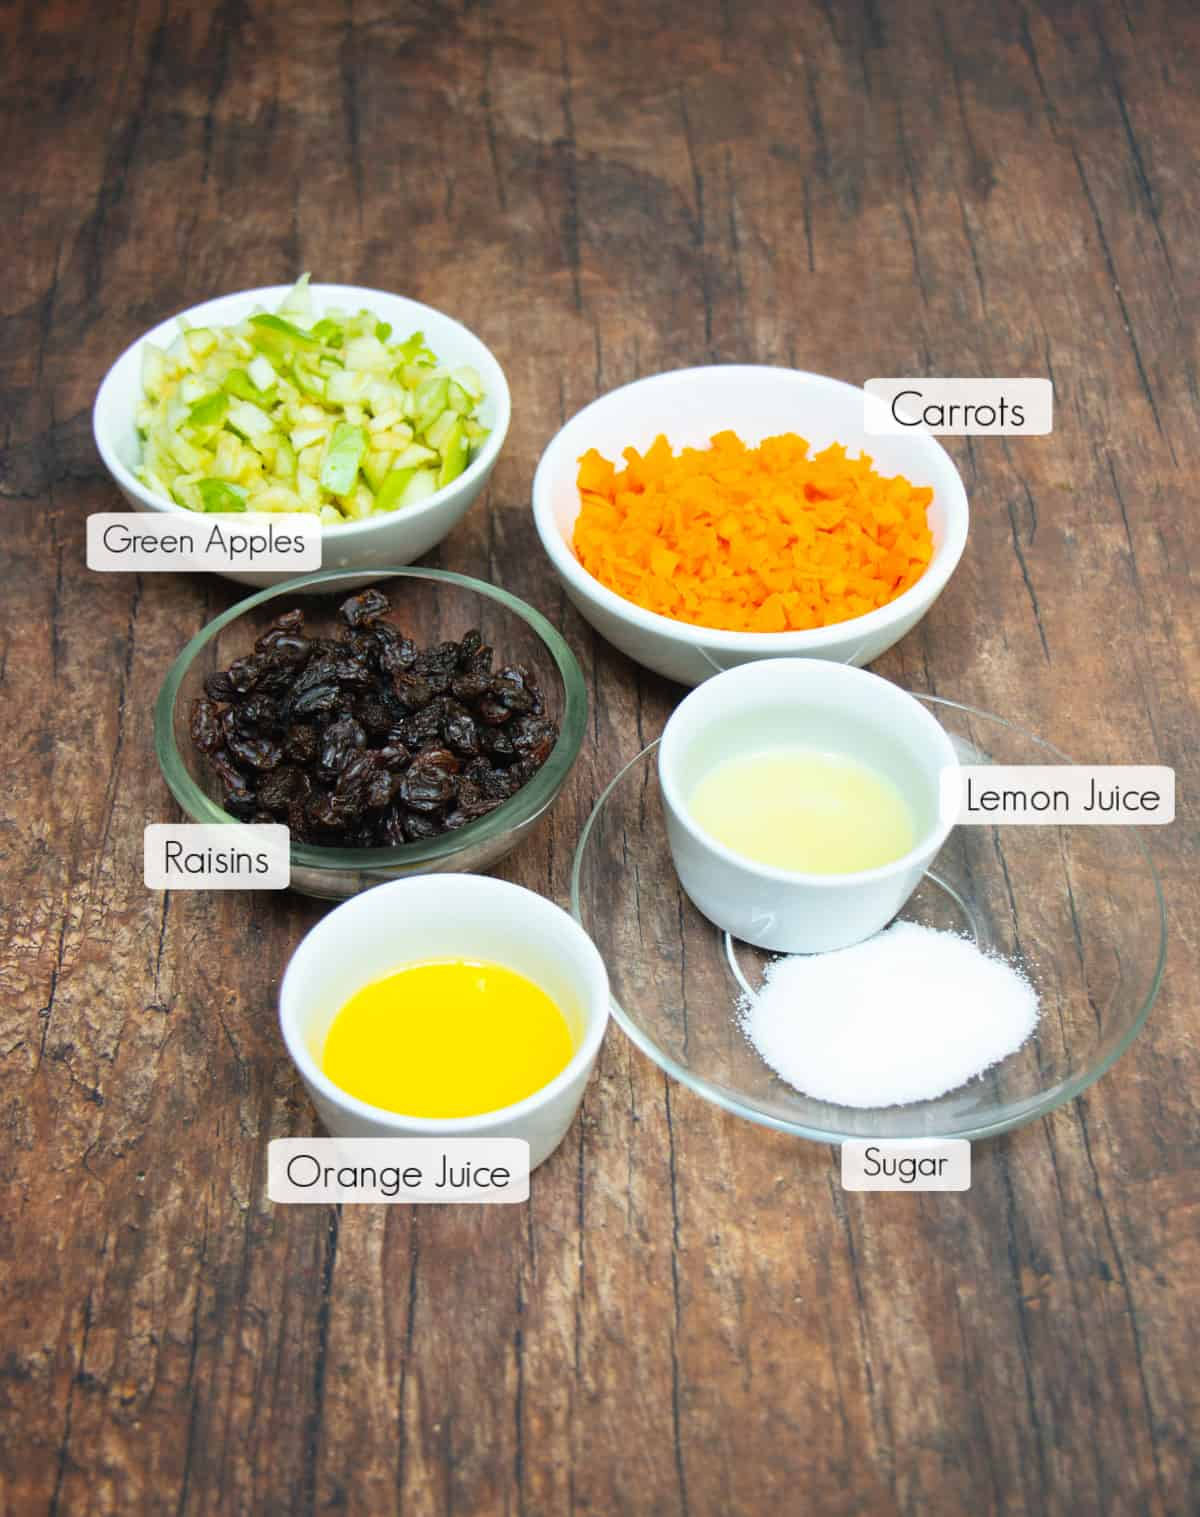 Ingredients in labeled bowls to make Apple Carrot Salad.